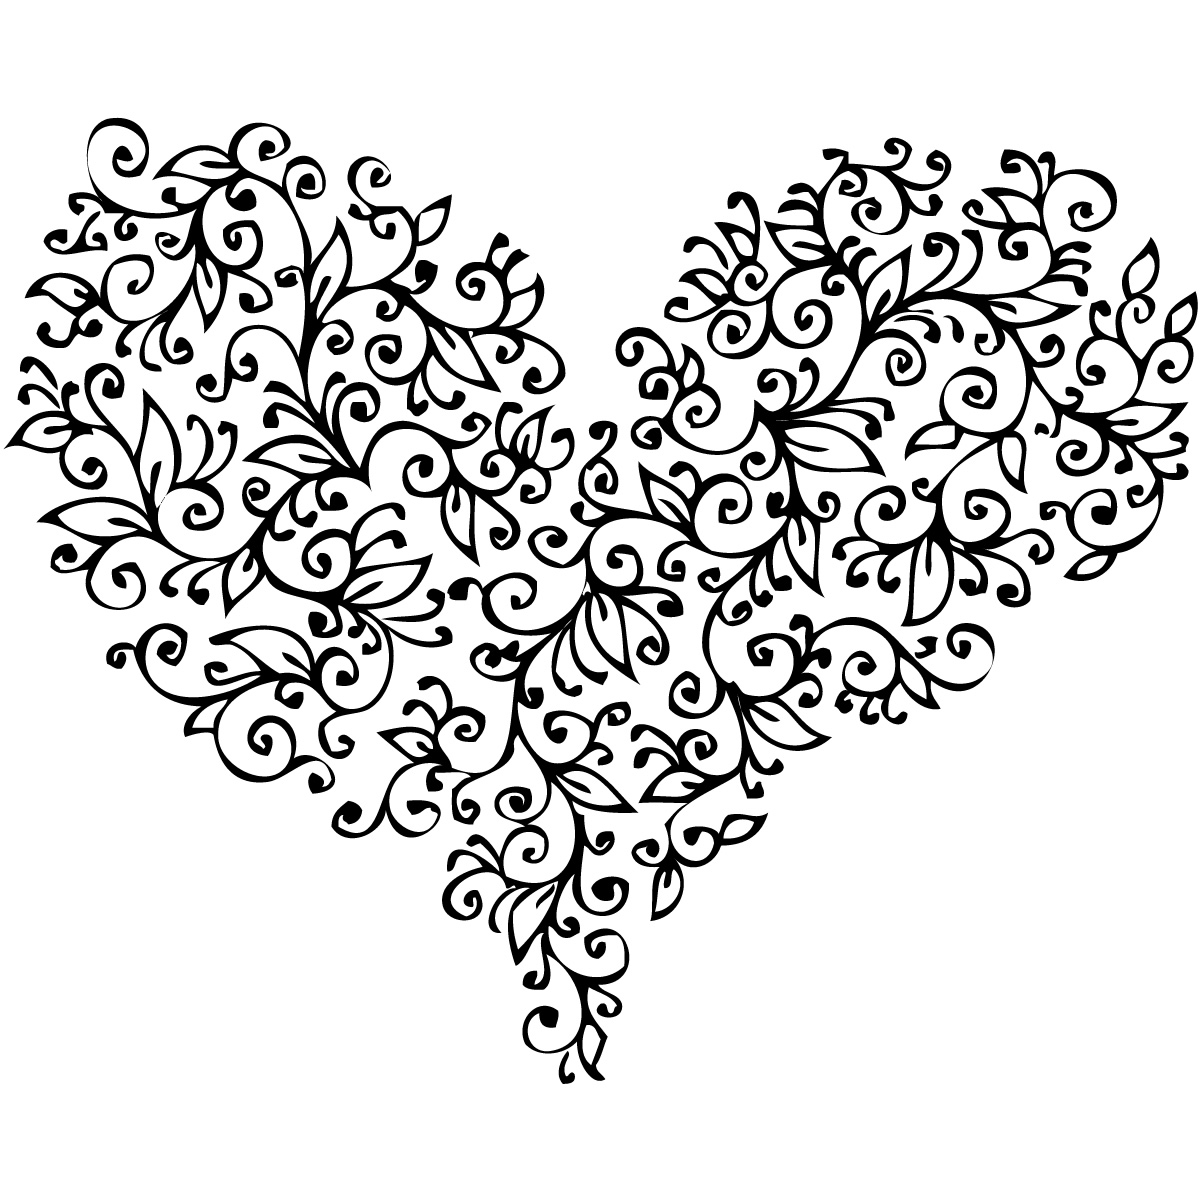 1200x1200 Love Heart Tattoo Black And White Wallpapers Broken Pictures